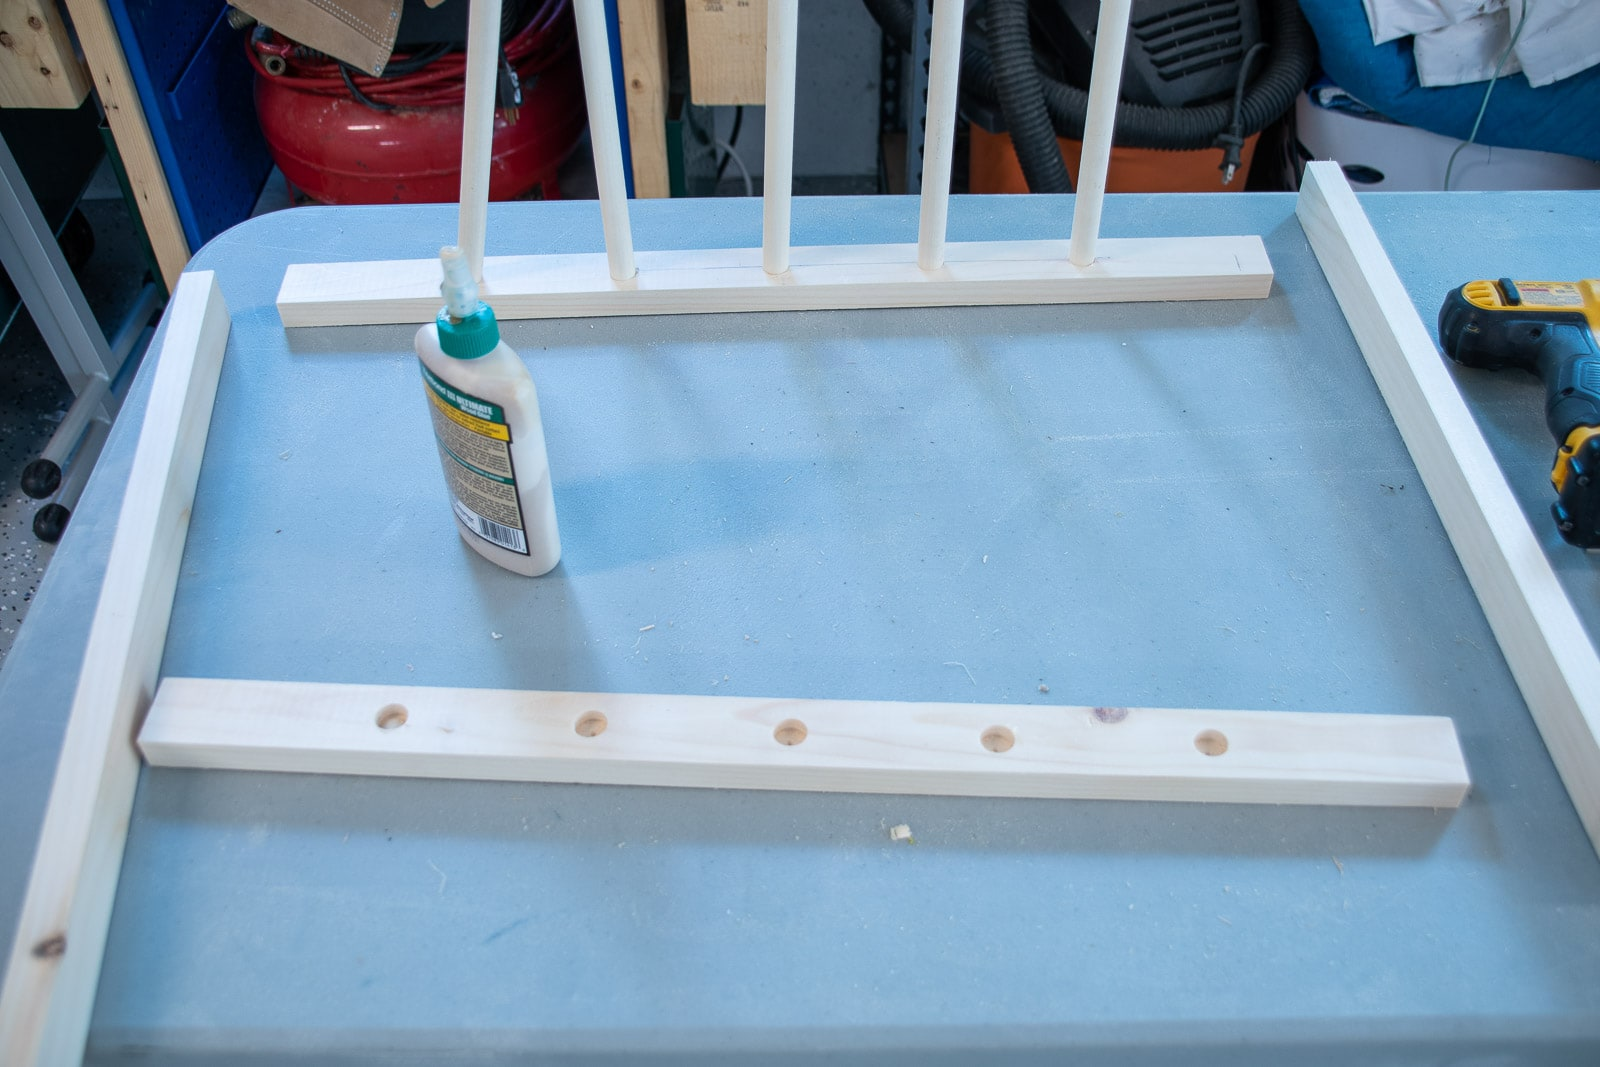 glue and clamp drying rack together